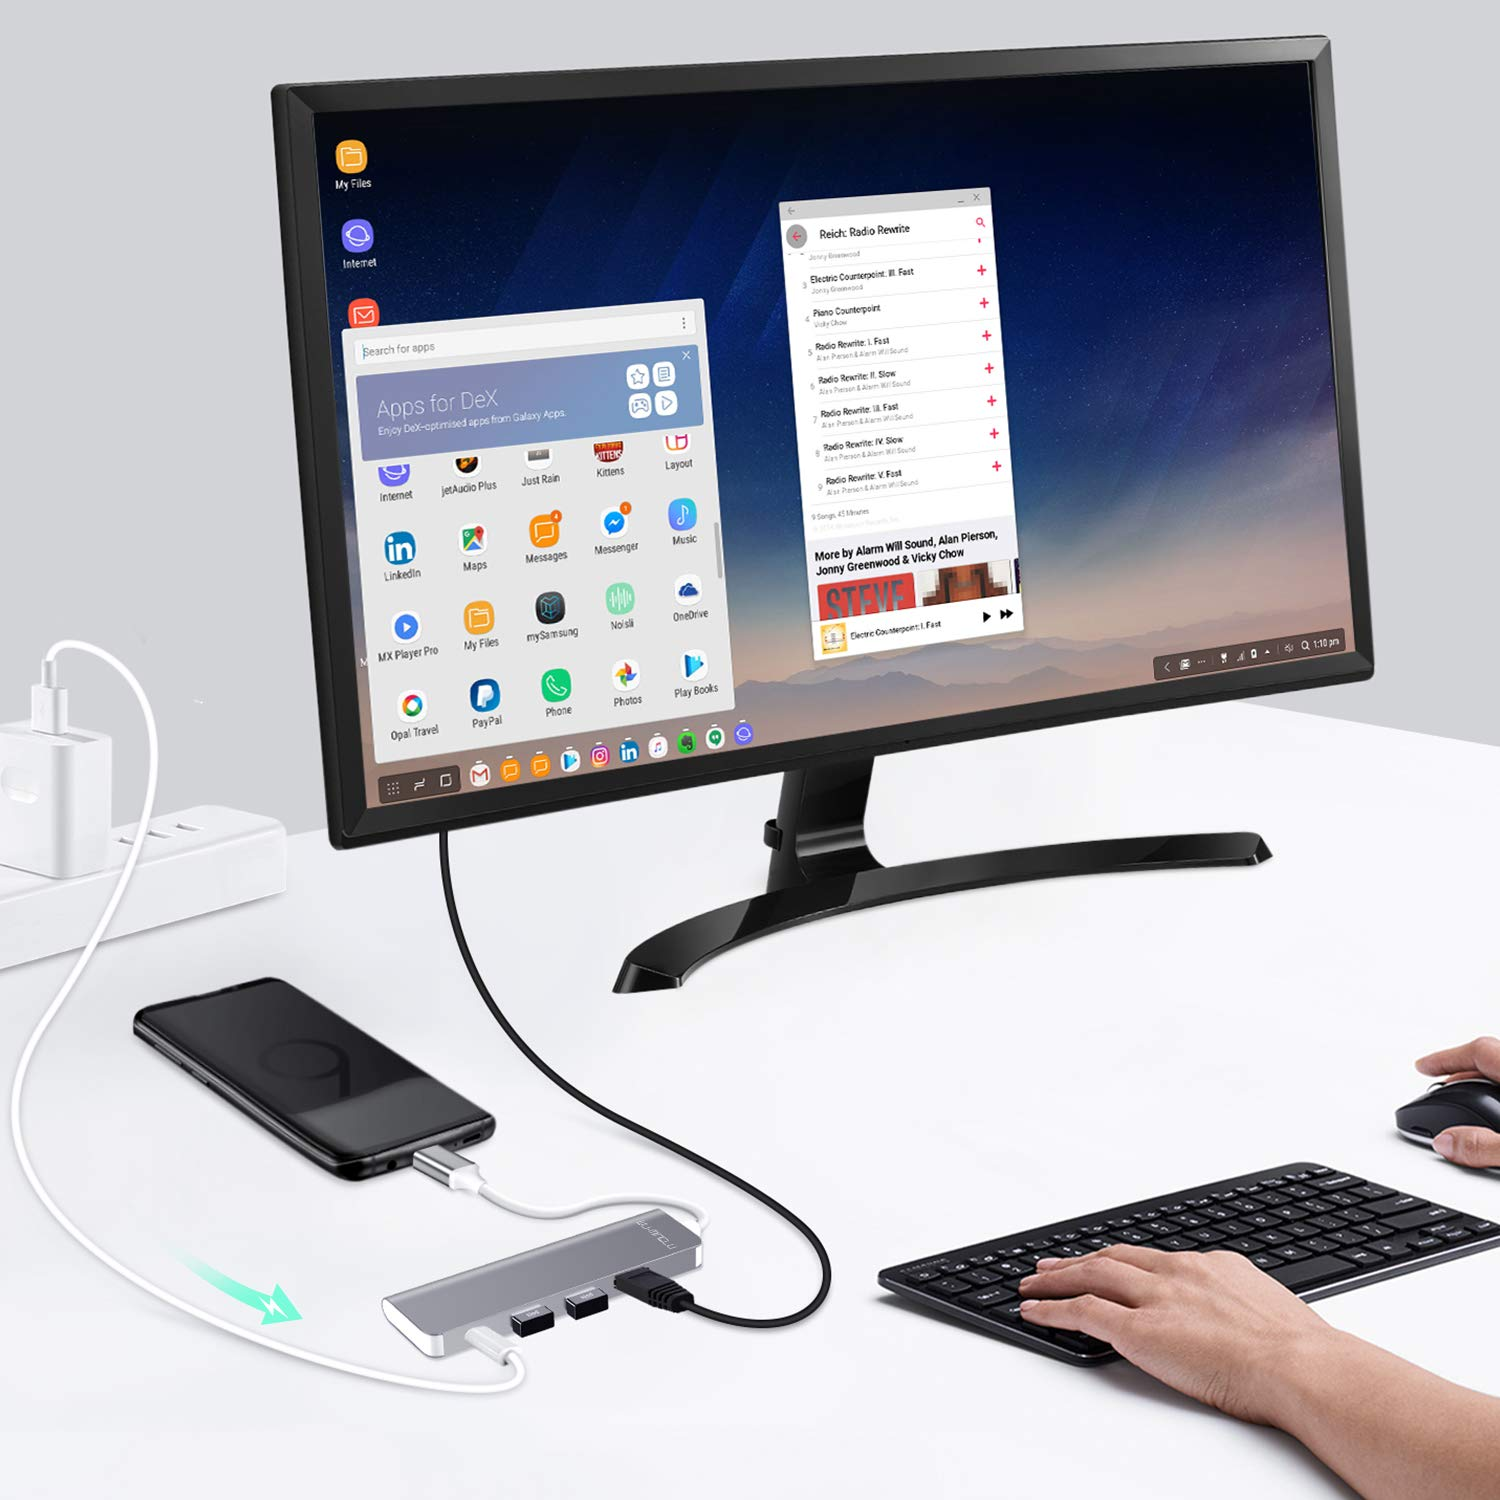 WU-MINGLU USB C Hub Samsung Dex Station für S8/S8+/S9/S9+/Note8,Typ C zu 4k HDMI Adapter USB 3.0 Power Delivery Kompatibel mit MacBook/MacBook Pro,Nintendo Switch und Thunderbolt 3 Geräte